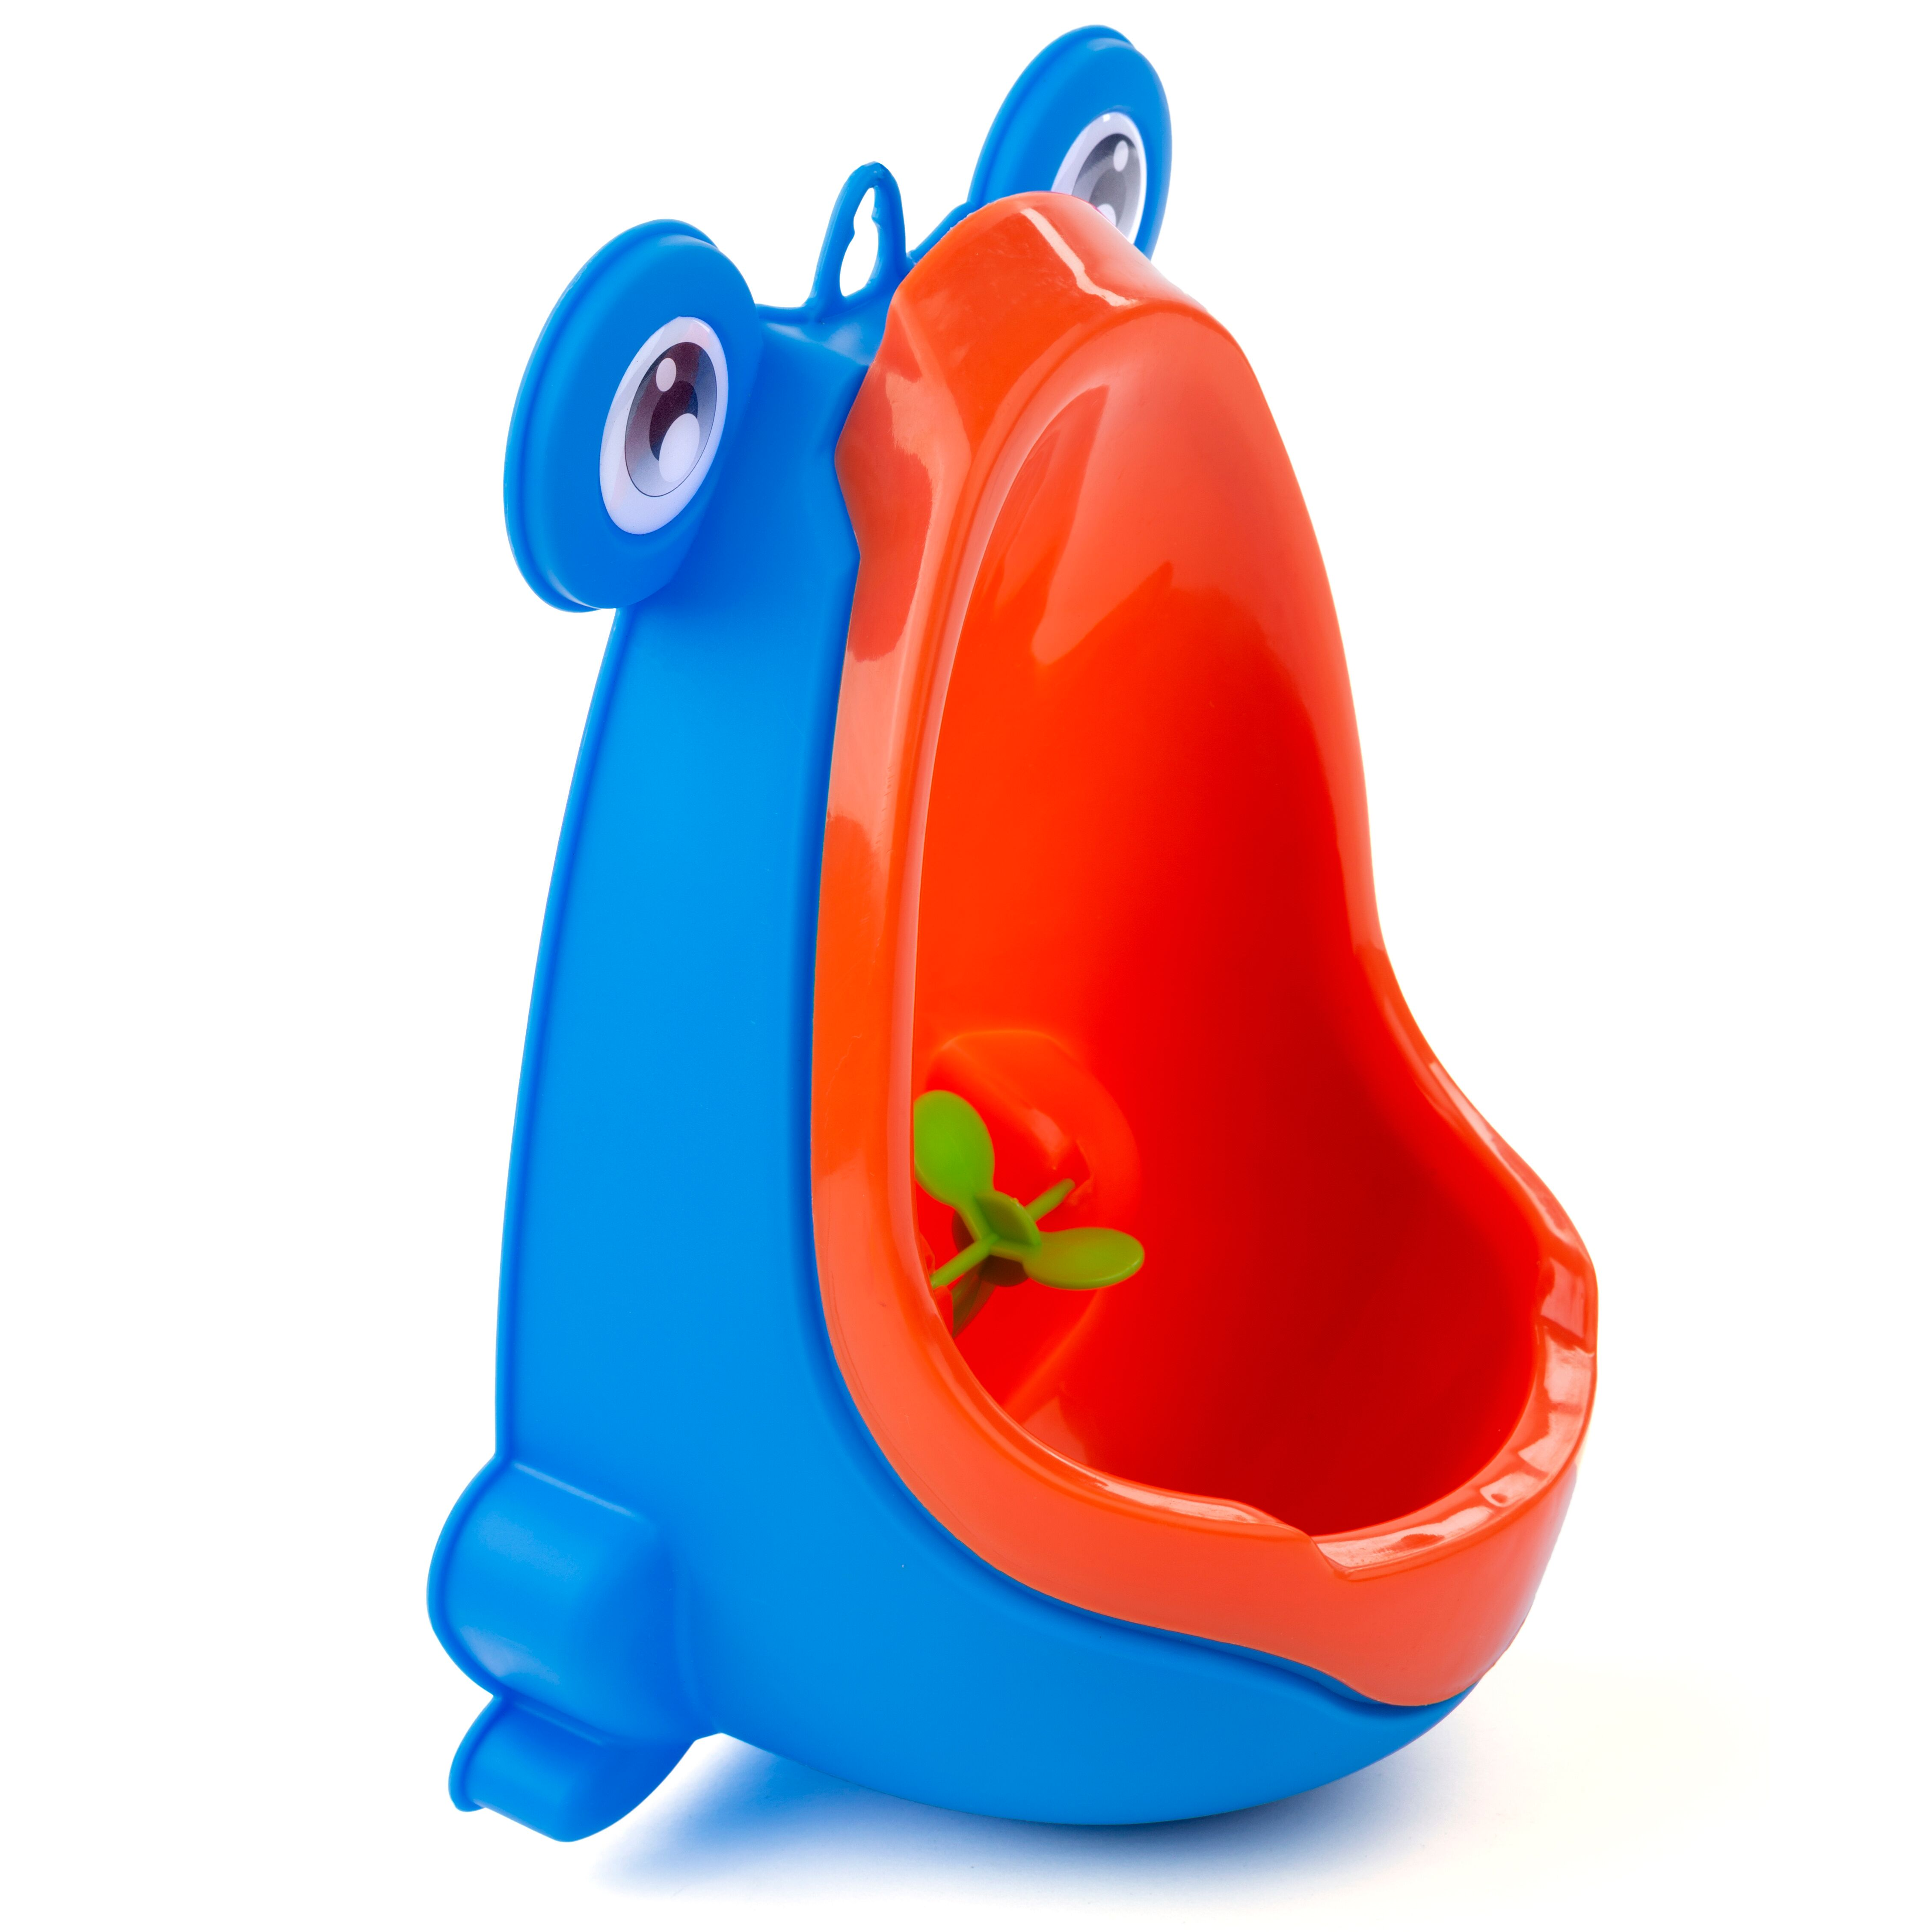 Potty Training Baby / Toddler Urinal with Aiming Target - Blue Frog